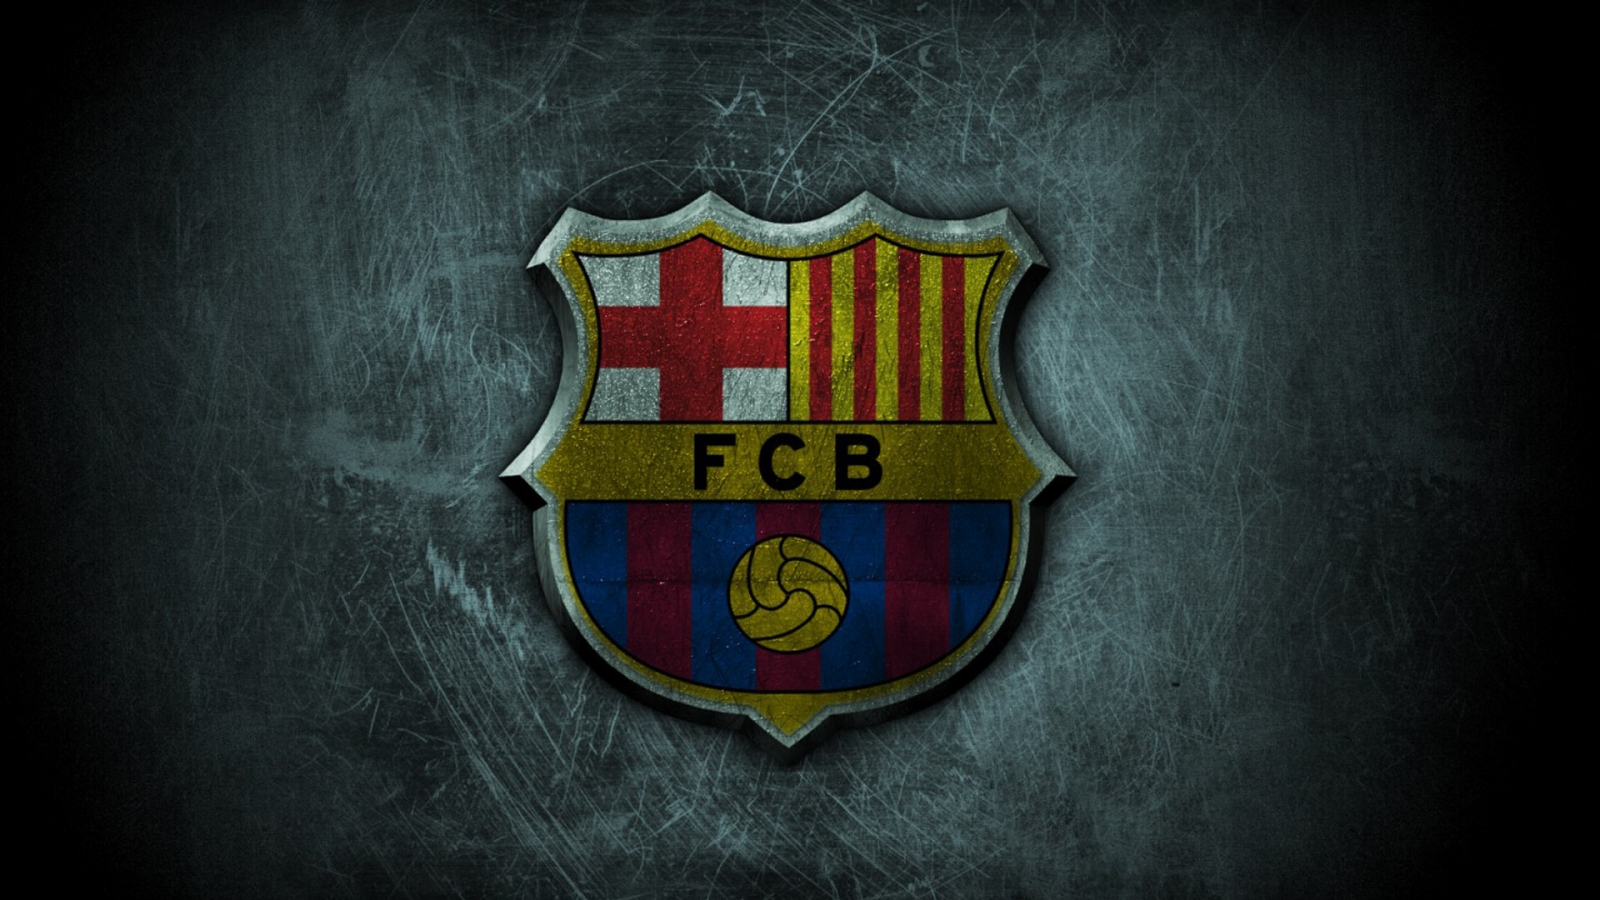 FC Barcelona Grunge Logo for 1600 x 900 HDTV resolution